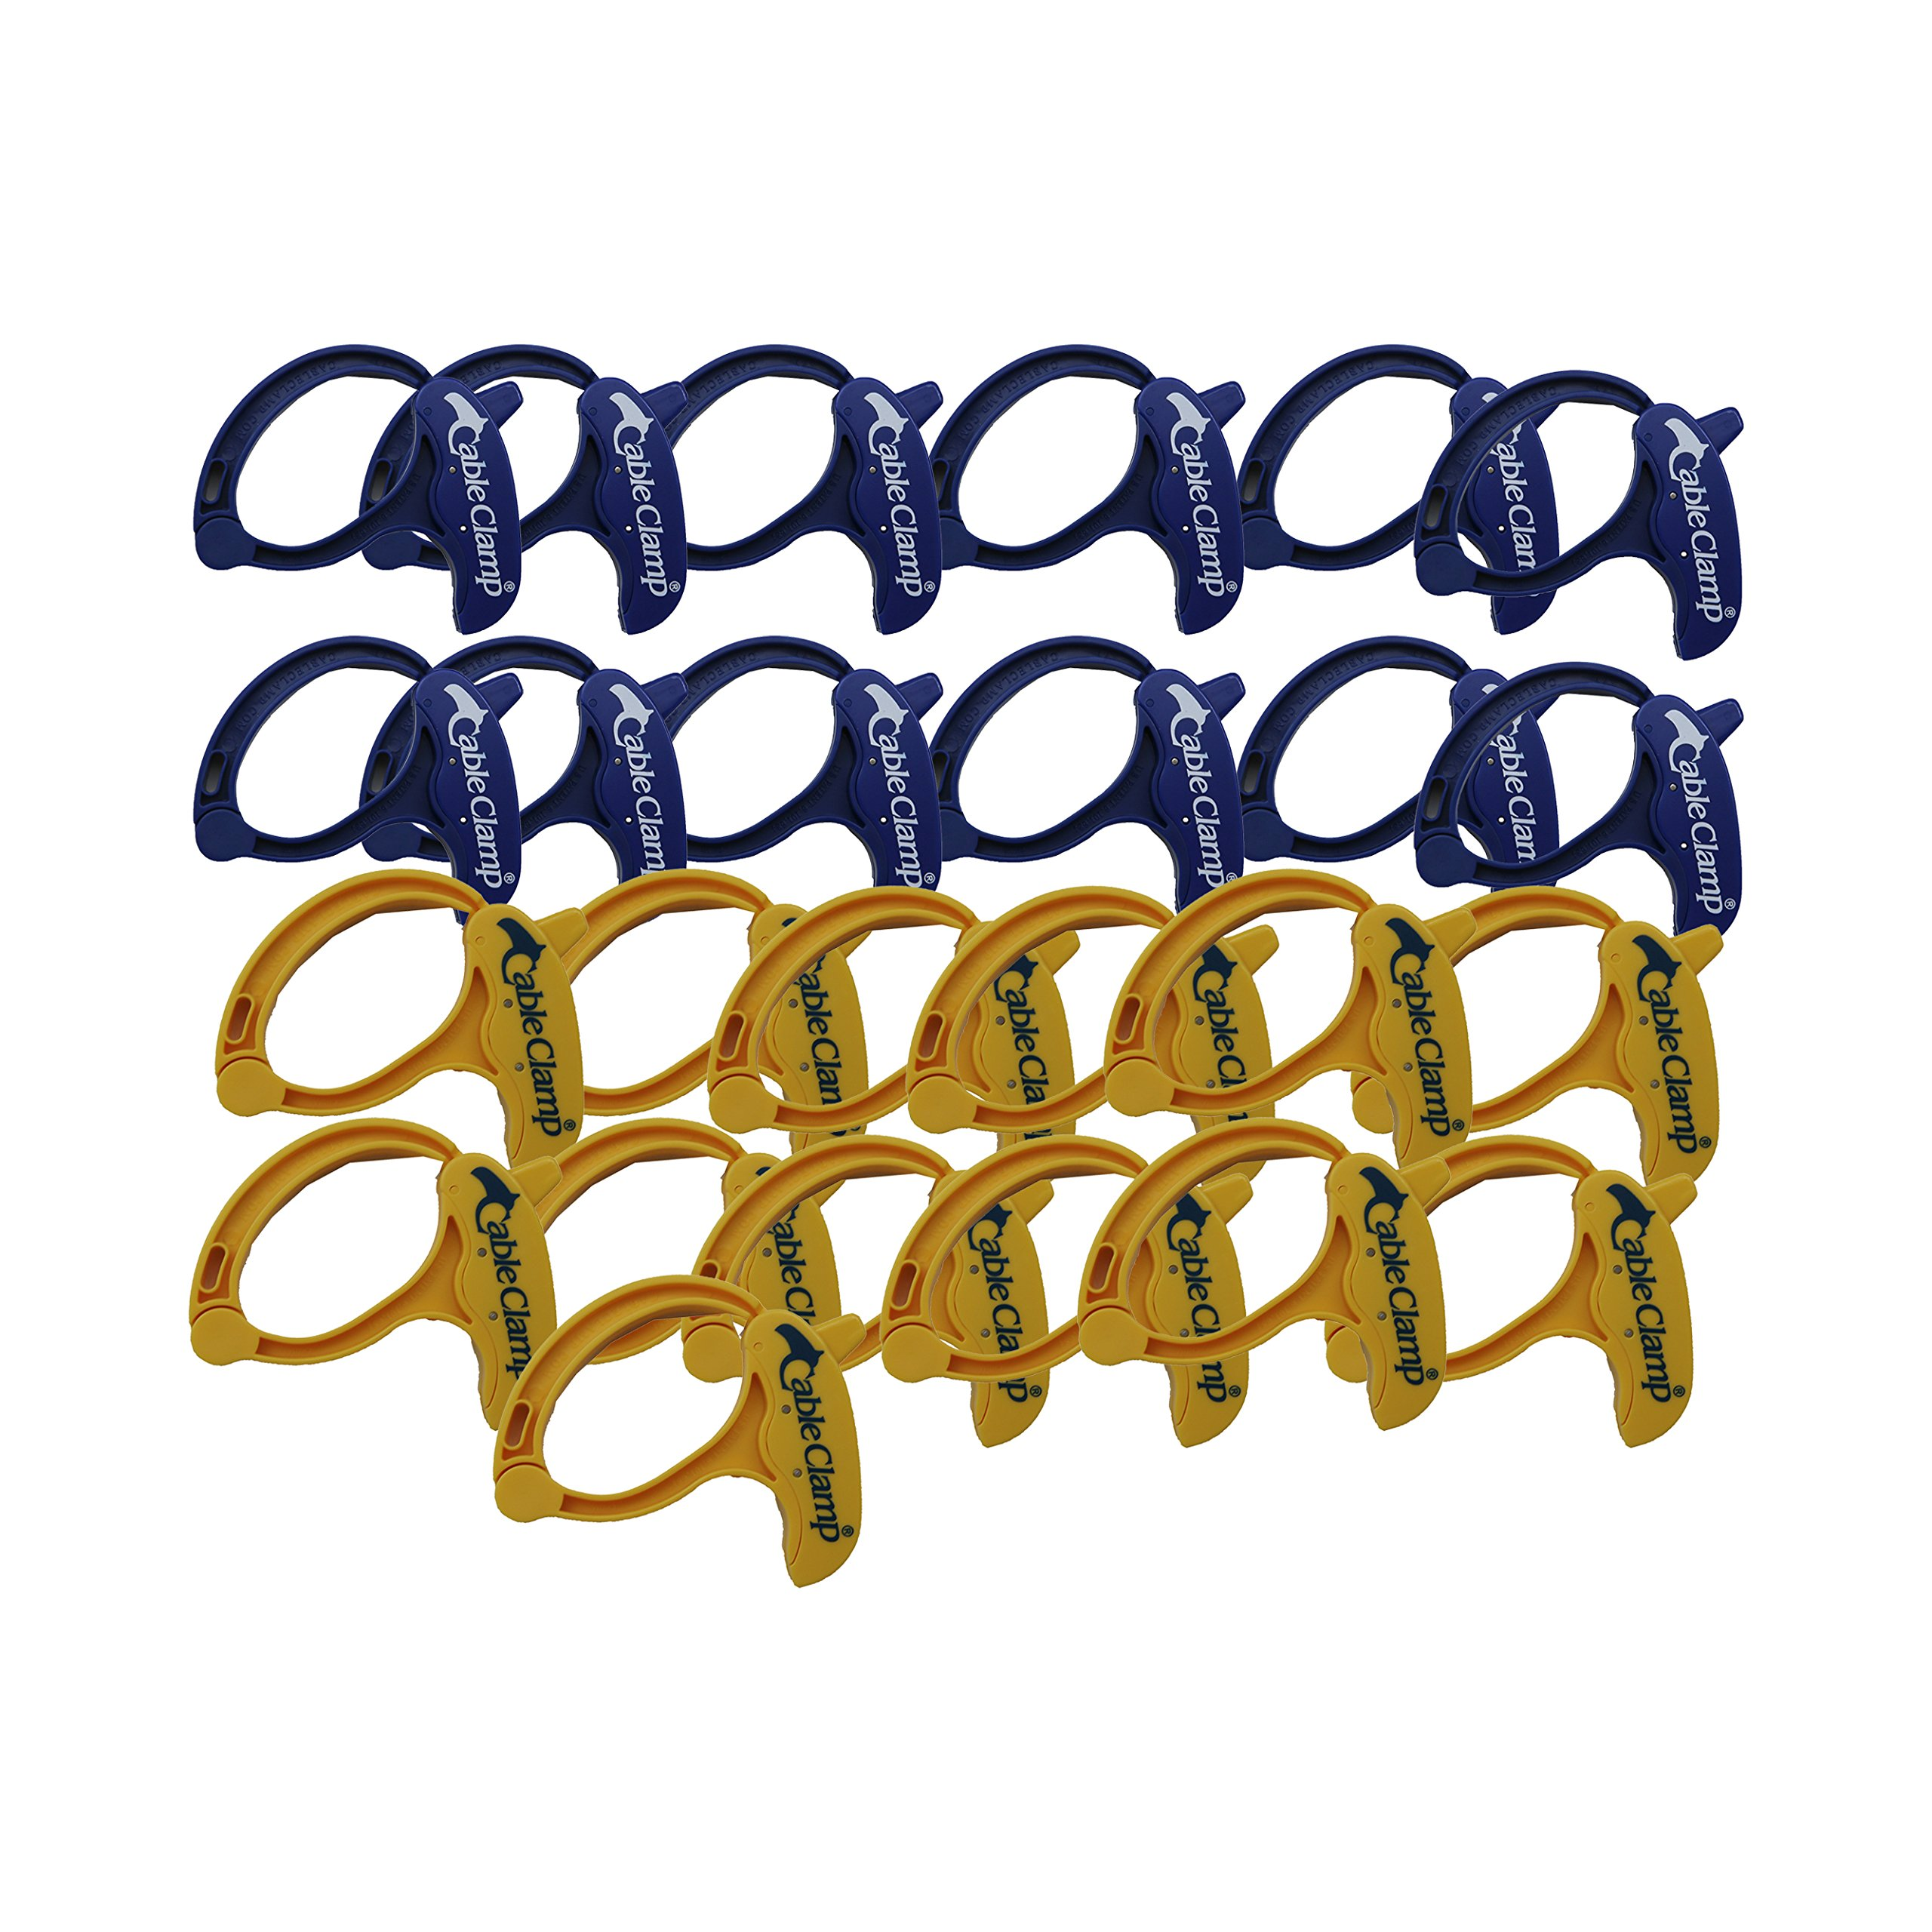 (25 Pack) Cable Clamp Display Case Large Blue/Yellow Assortment Cable Management Organization